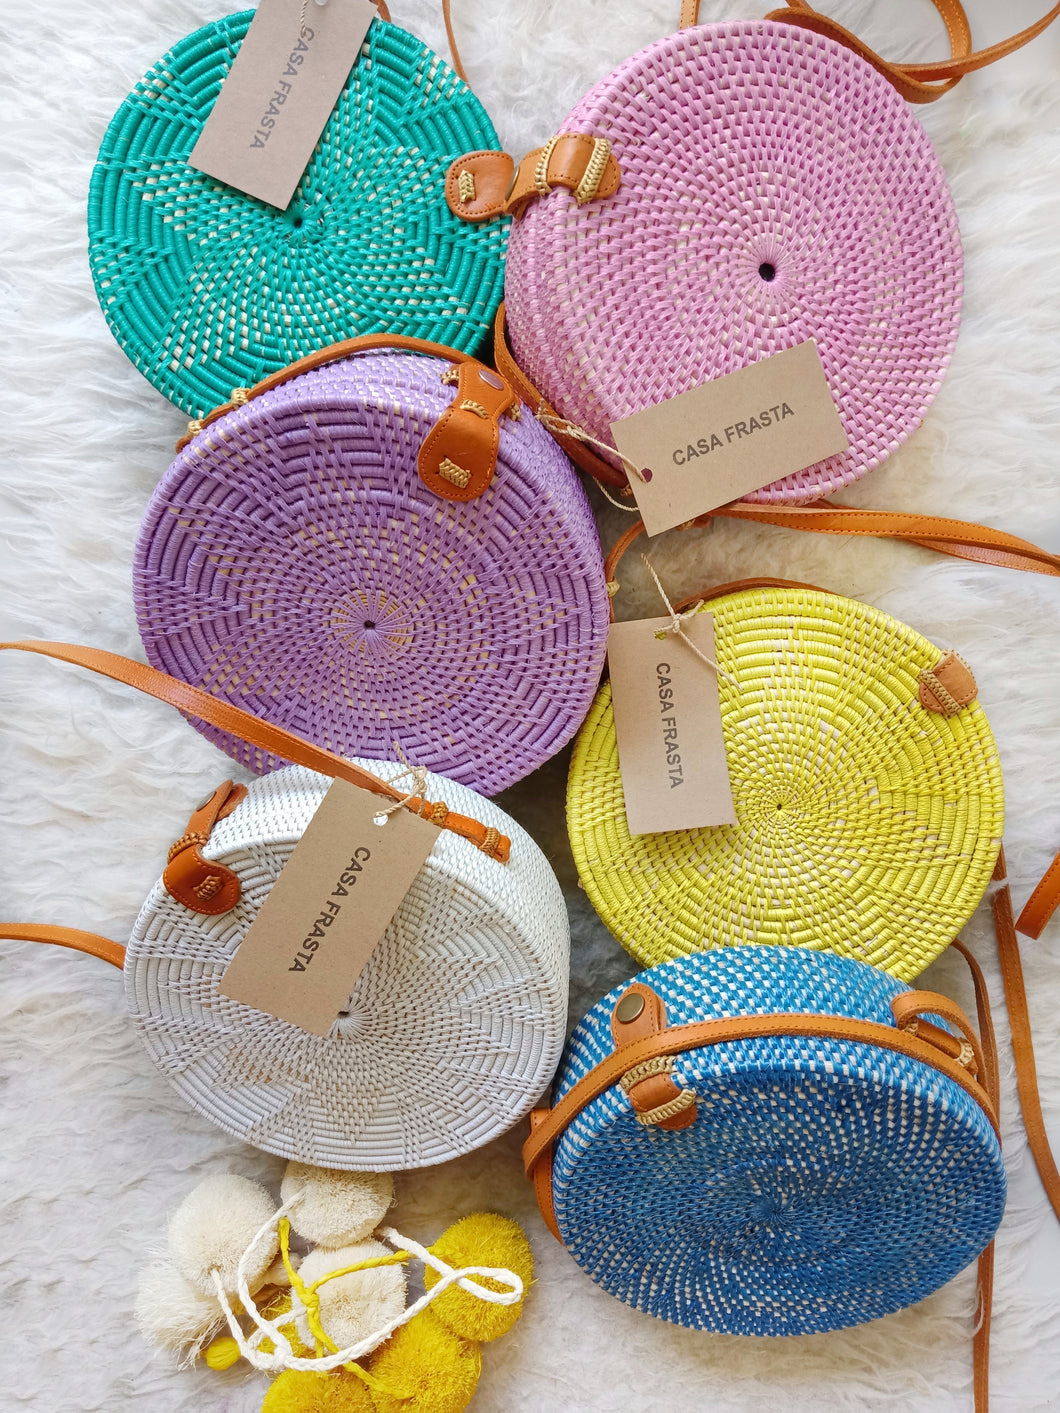 Gorgeous colored rattan bag perfect for all weather, this Bali bag is handwoven, perfect for Hong Kong Diaries and rattan bag outfit street style.